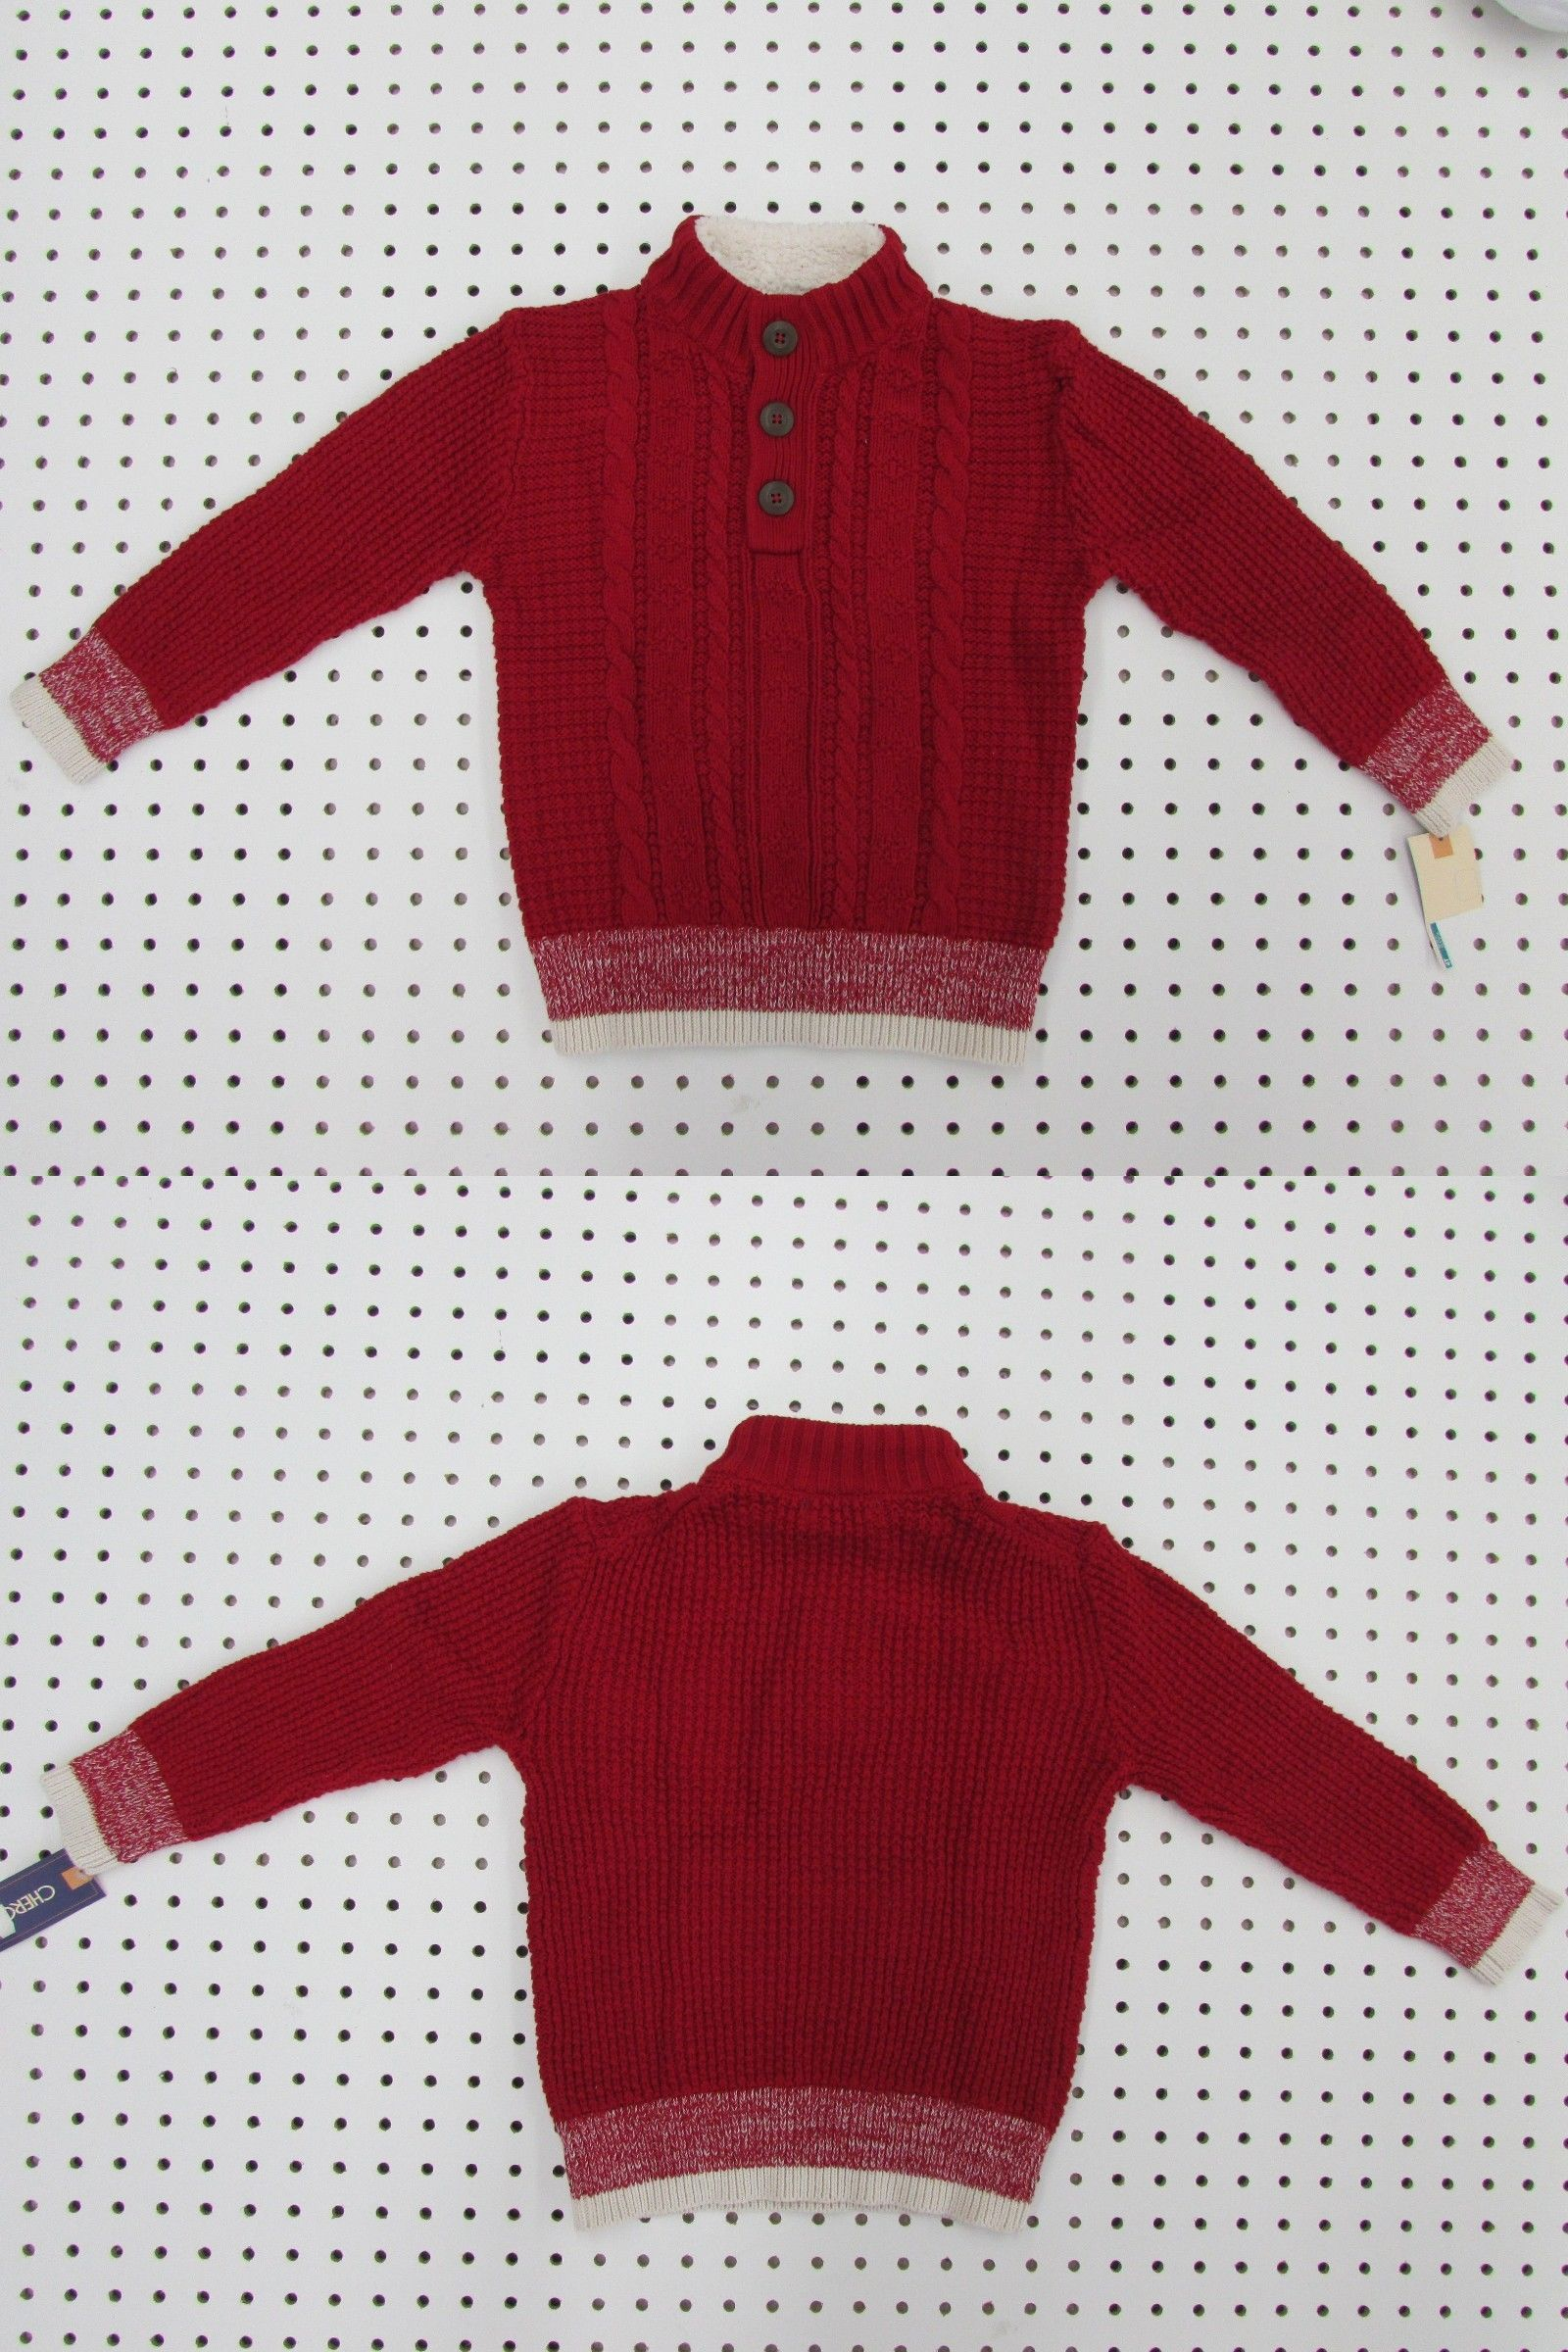 e2cc39211655 Sweaters 147338  Cherokee Toddler Boy S Red Velvet Sweater - Size 4T ...